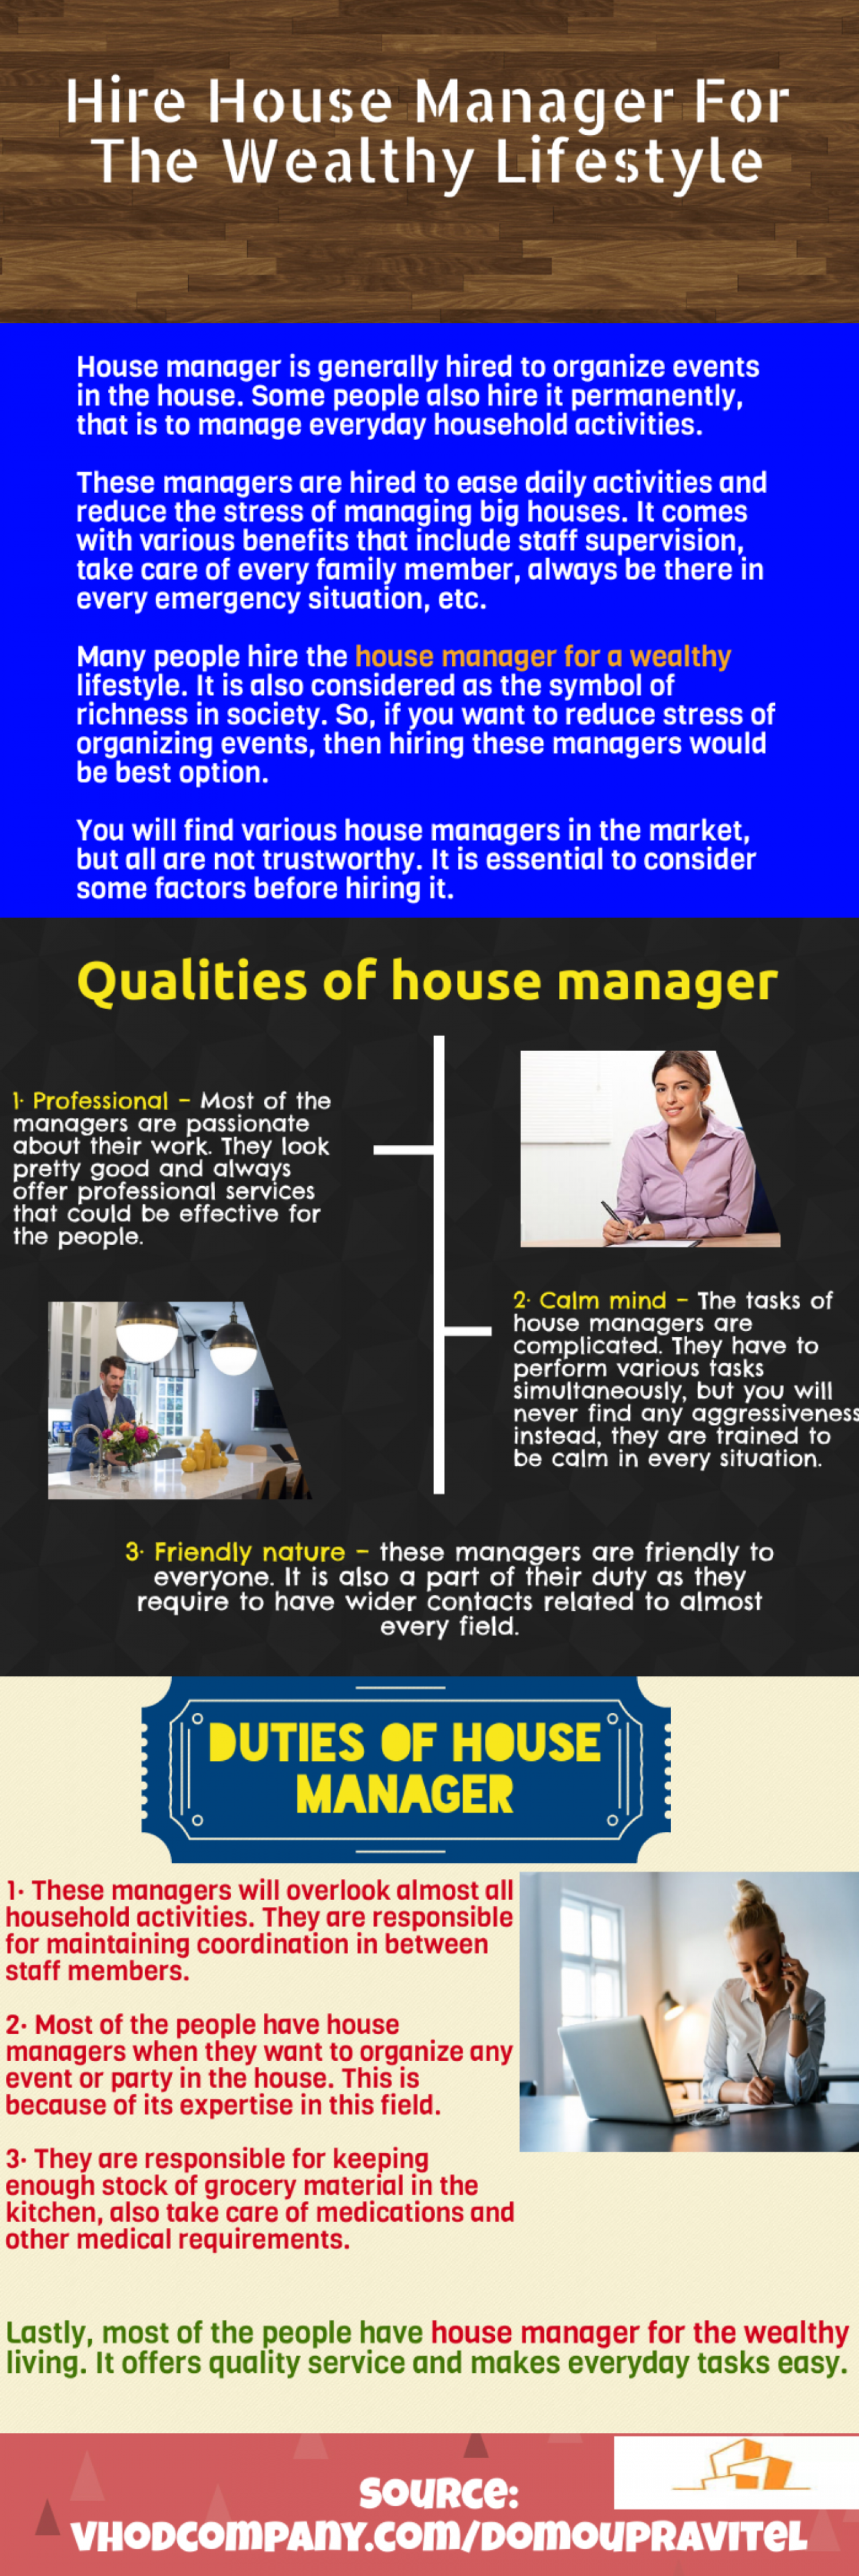 House Manager For The Wealthy Lifestyle Infographic